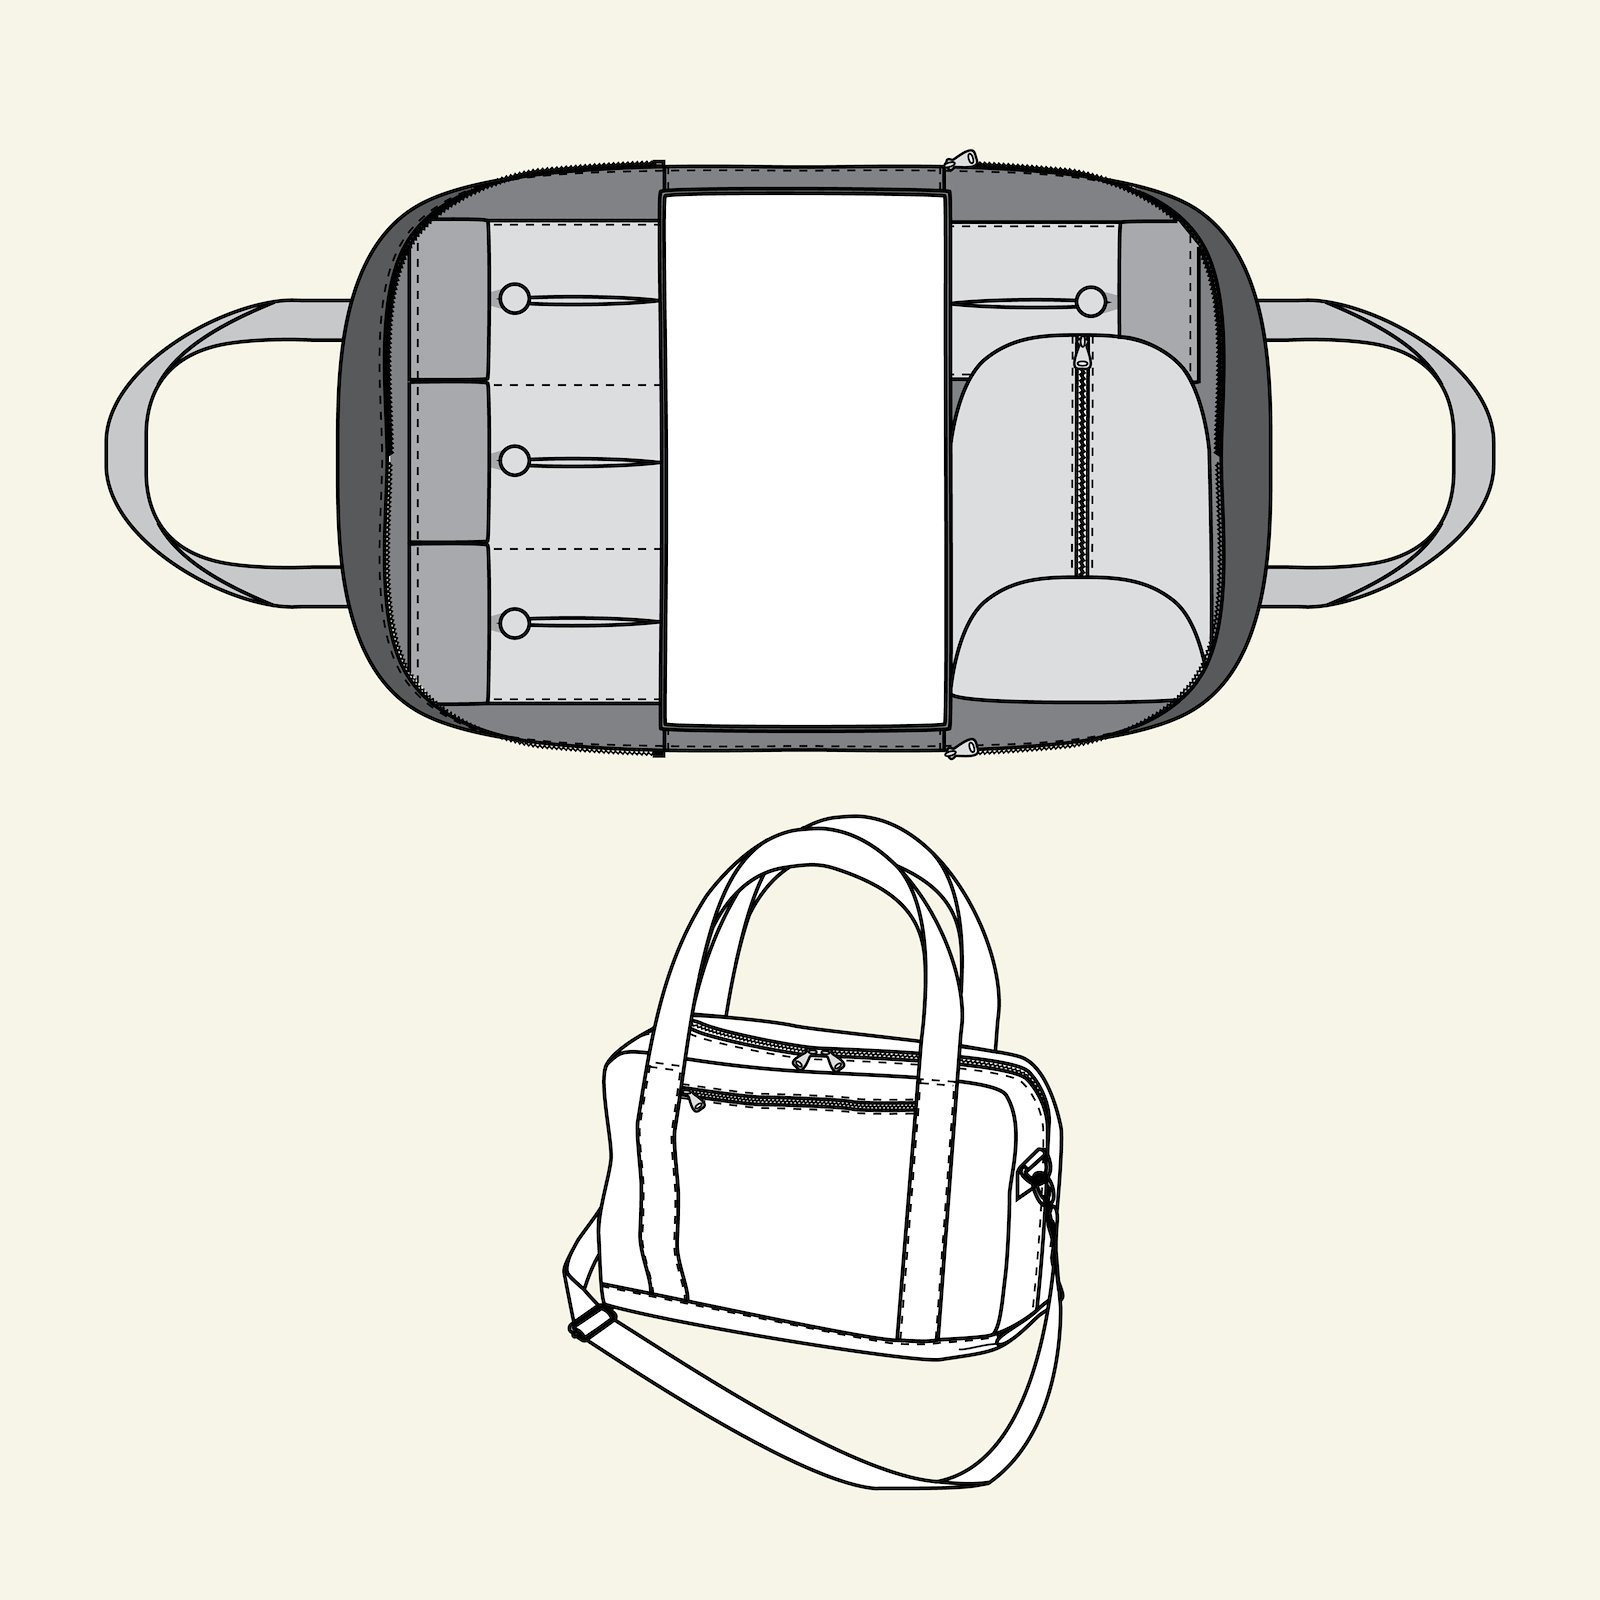 Changing bag with zipper p90299_pack